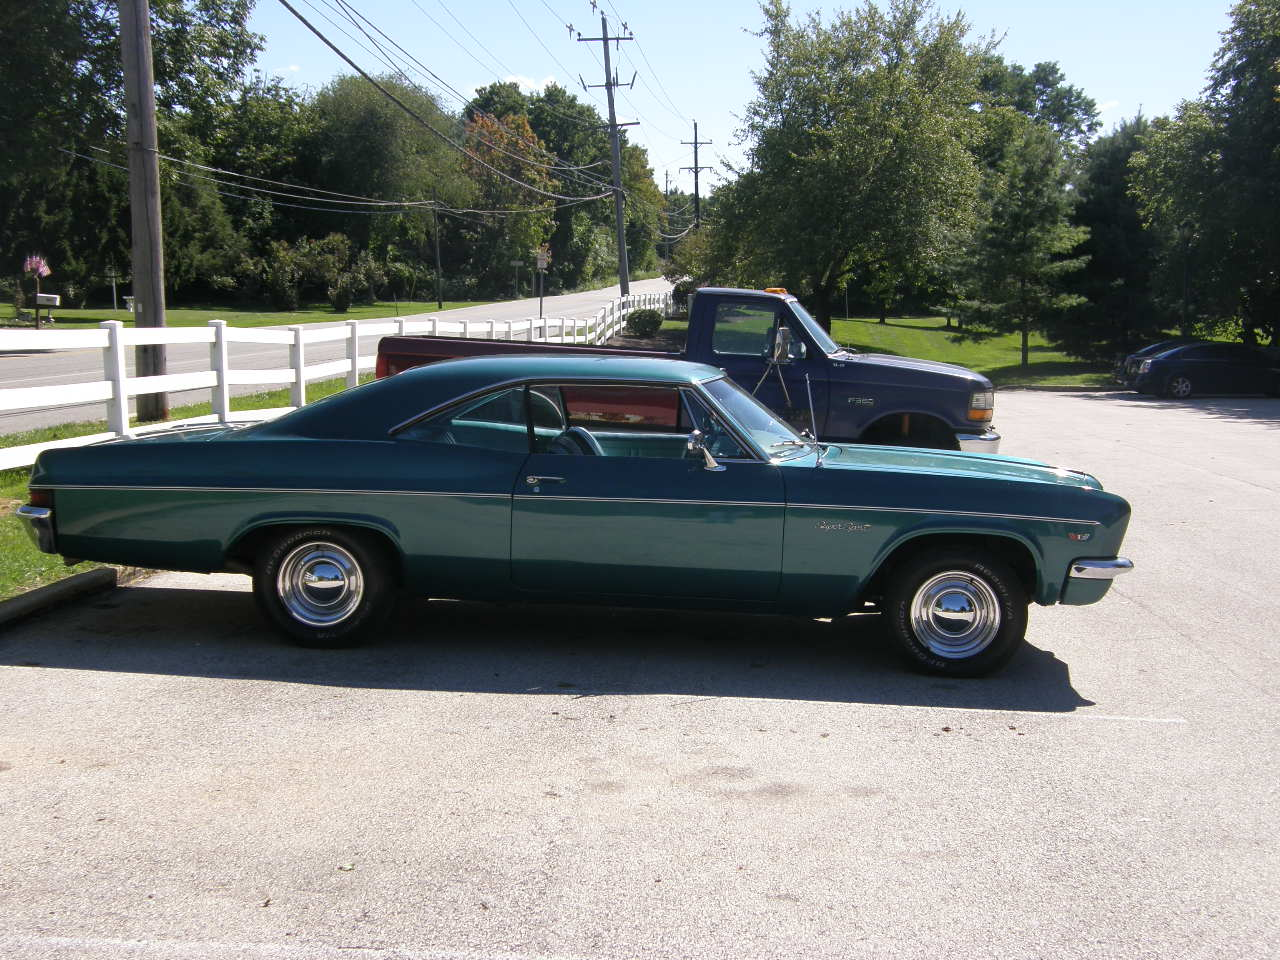 1966 Impala Ss Build Page 2 Chevy Forums Click Image For Larger Version Name P9060075 Views 6777 Size 2039